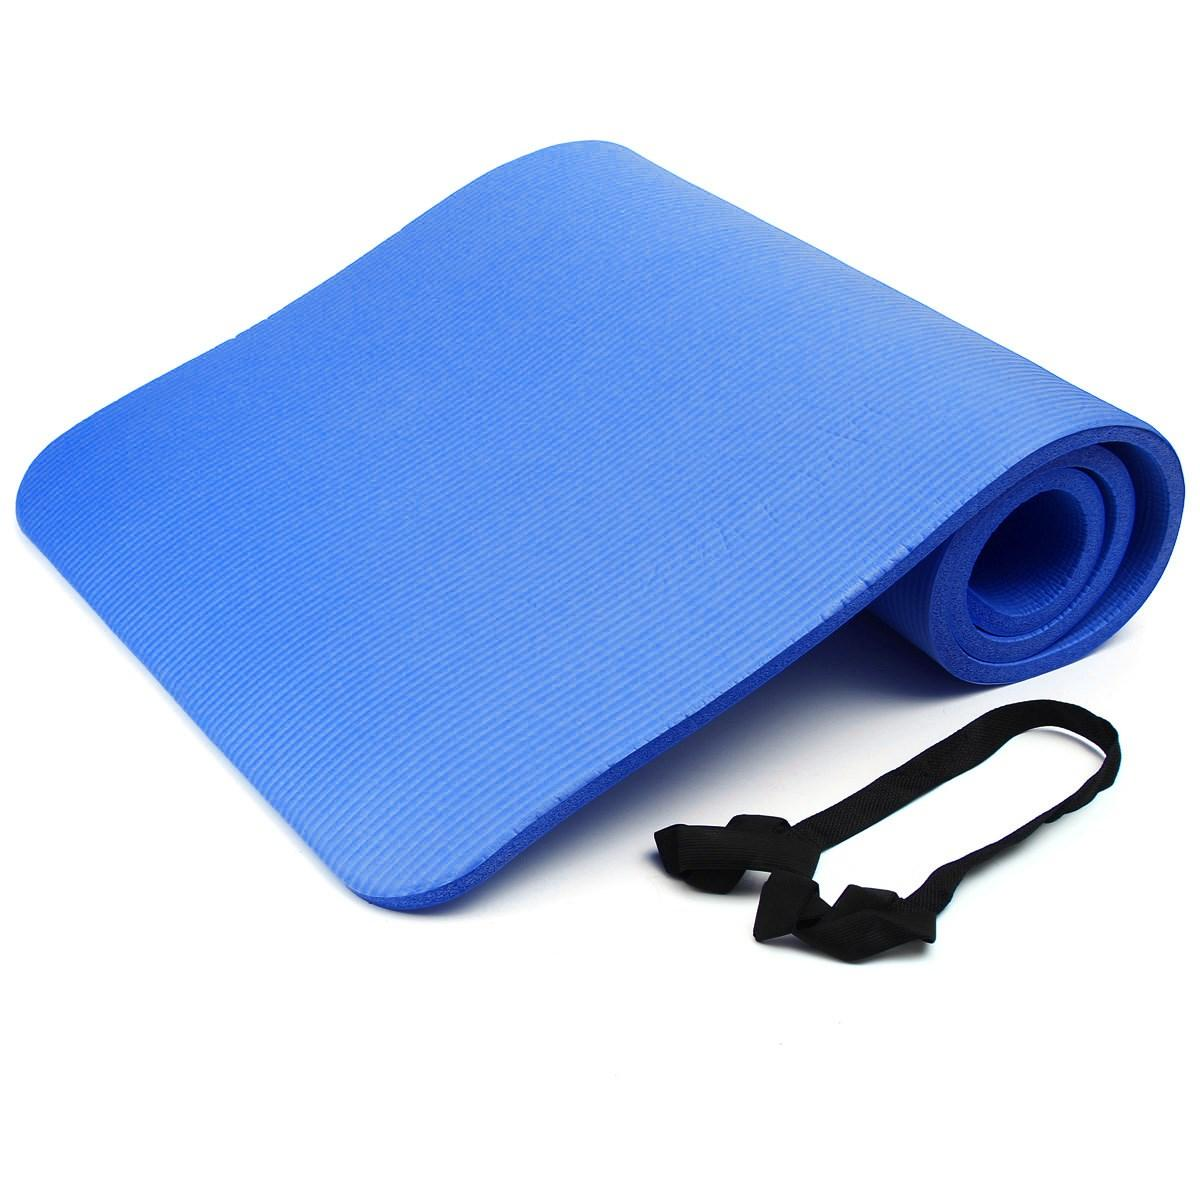 name accessories business inch custom customize extra embroidered yoga thick mat deluxe with or your mats